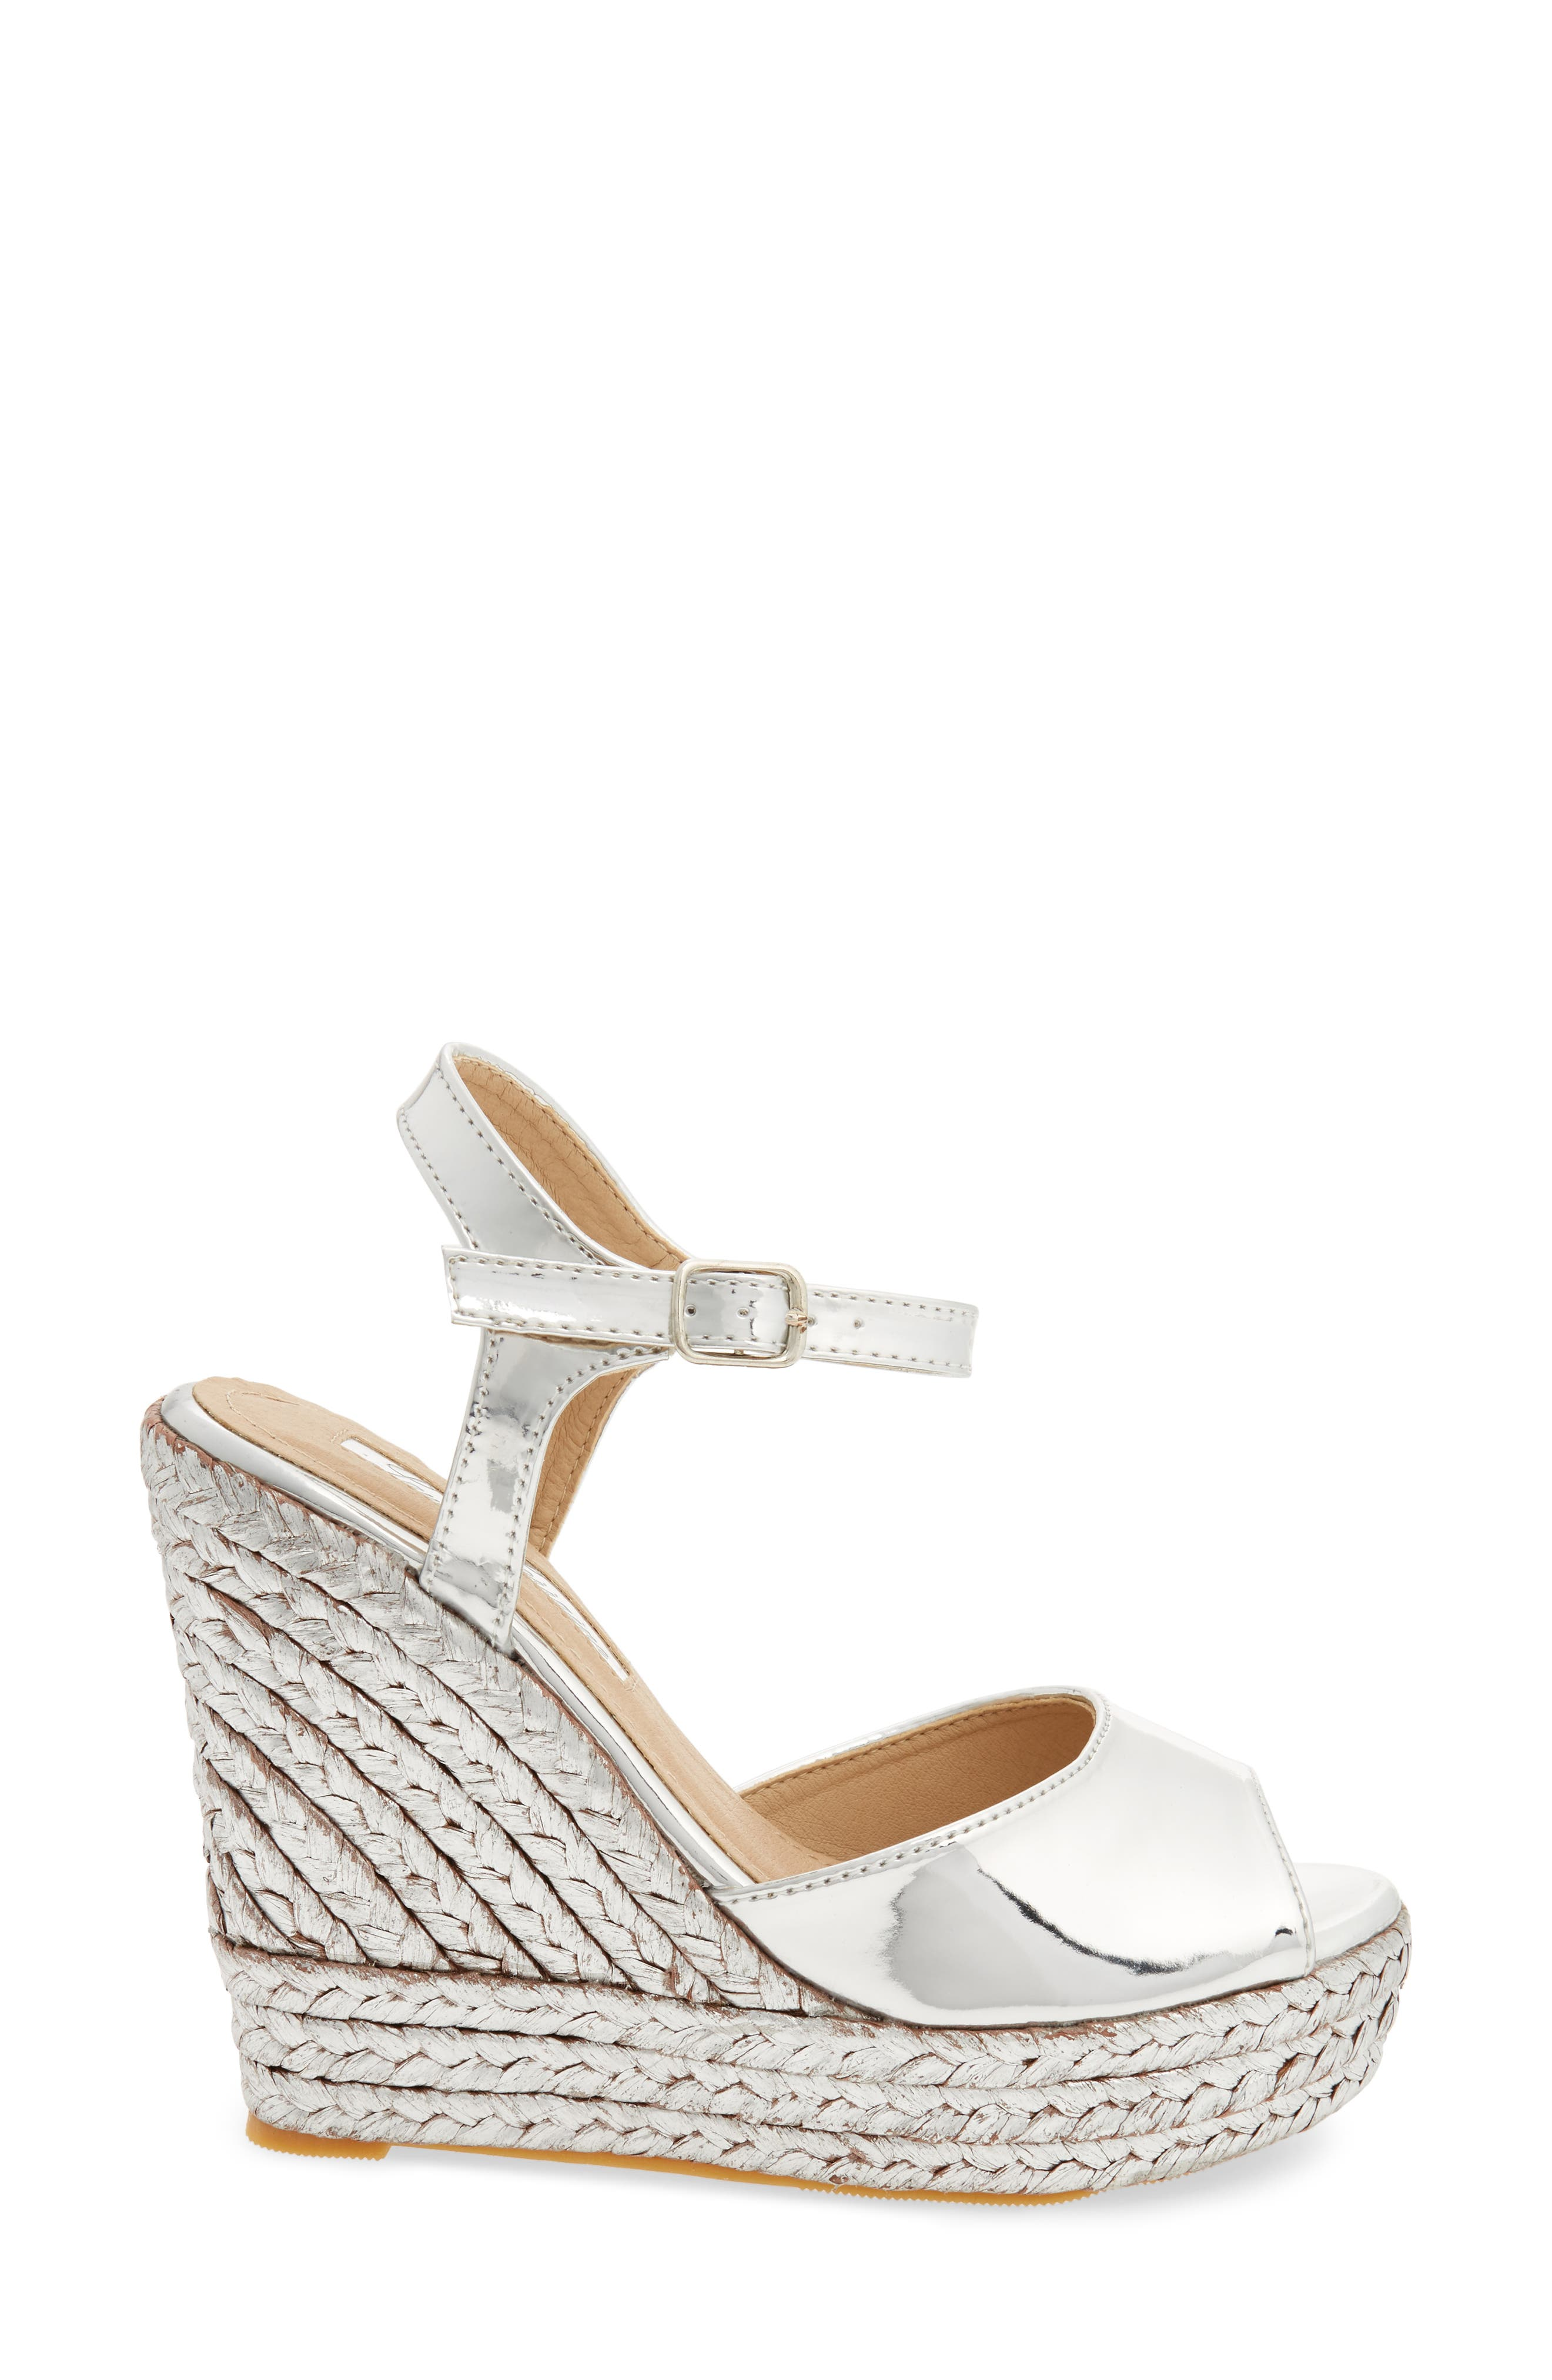 Lina Platform Wedge Sandal,                             Alternate thumbnail 3, color,                             SILVER